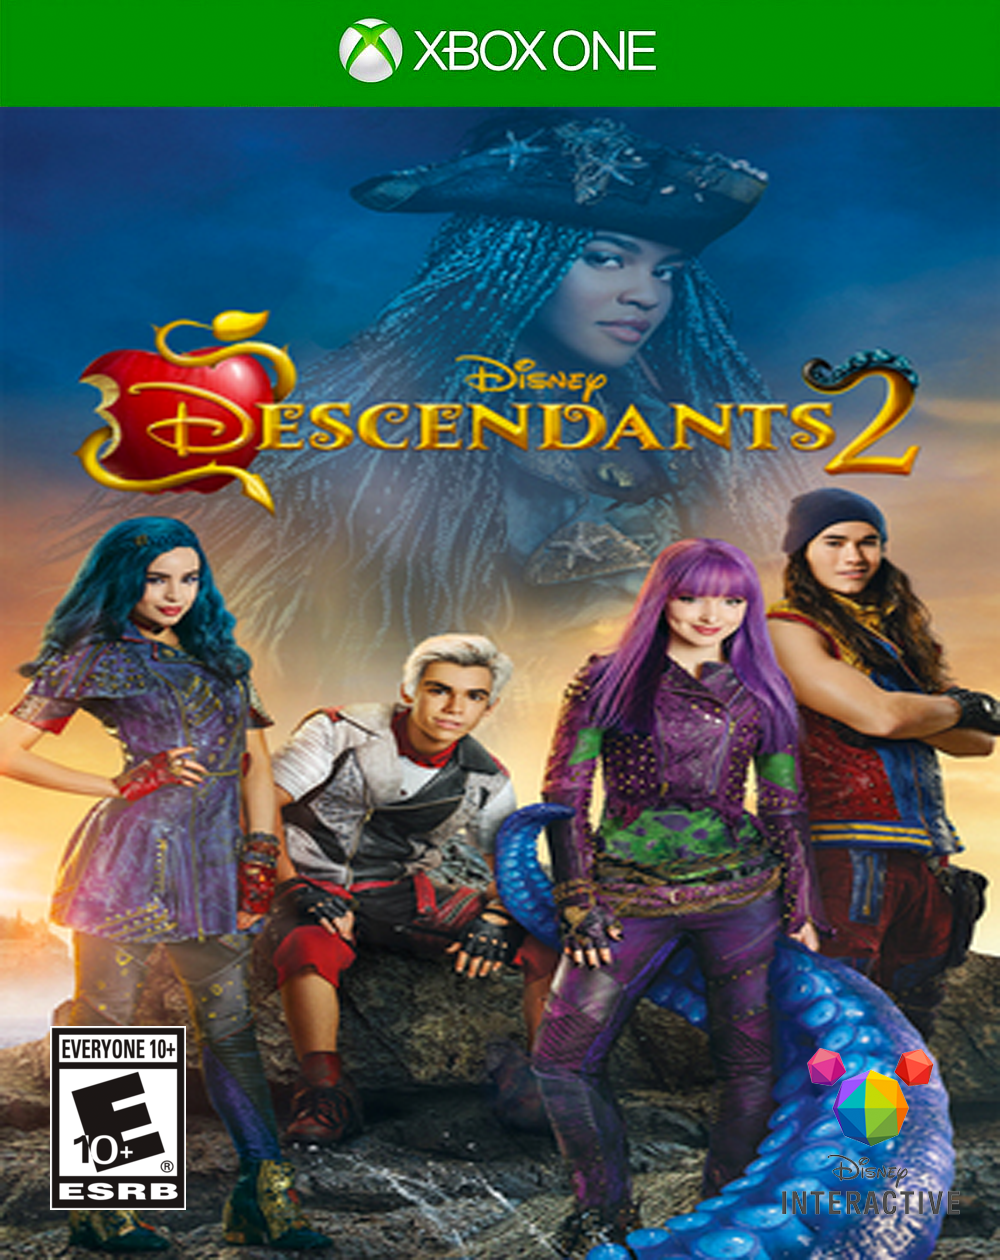 Disney's Descendants 2: The Video Game